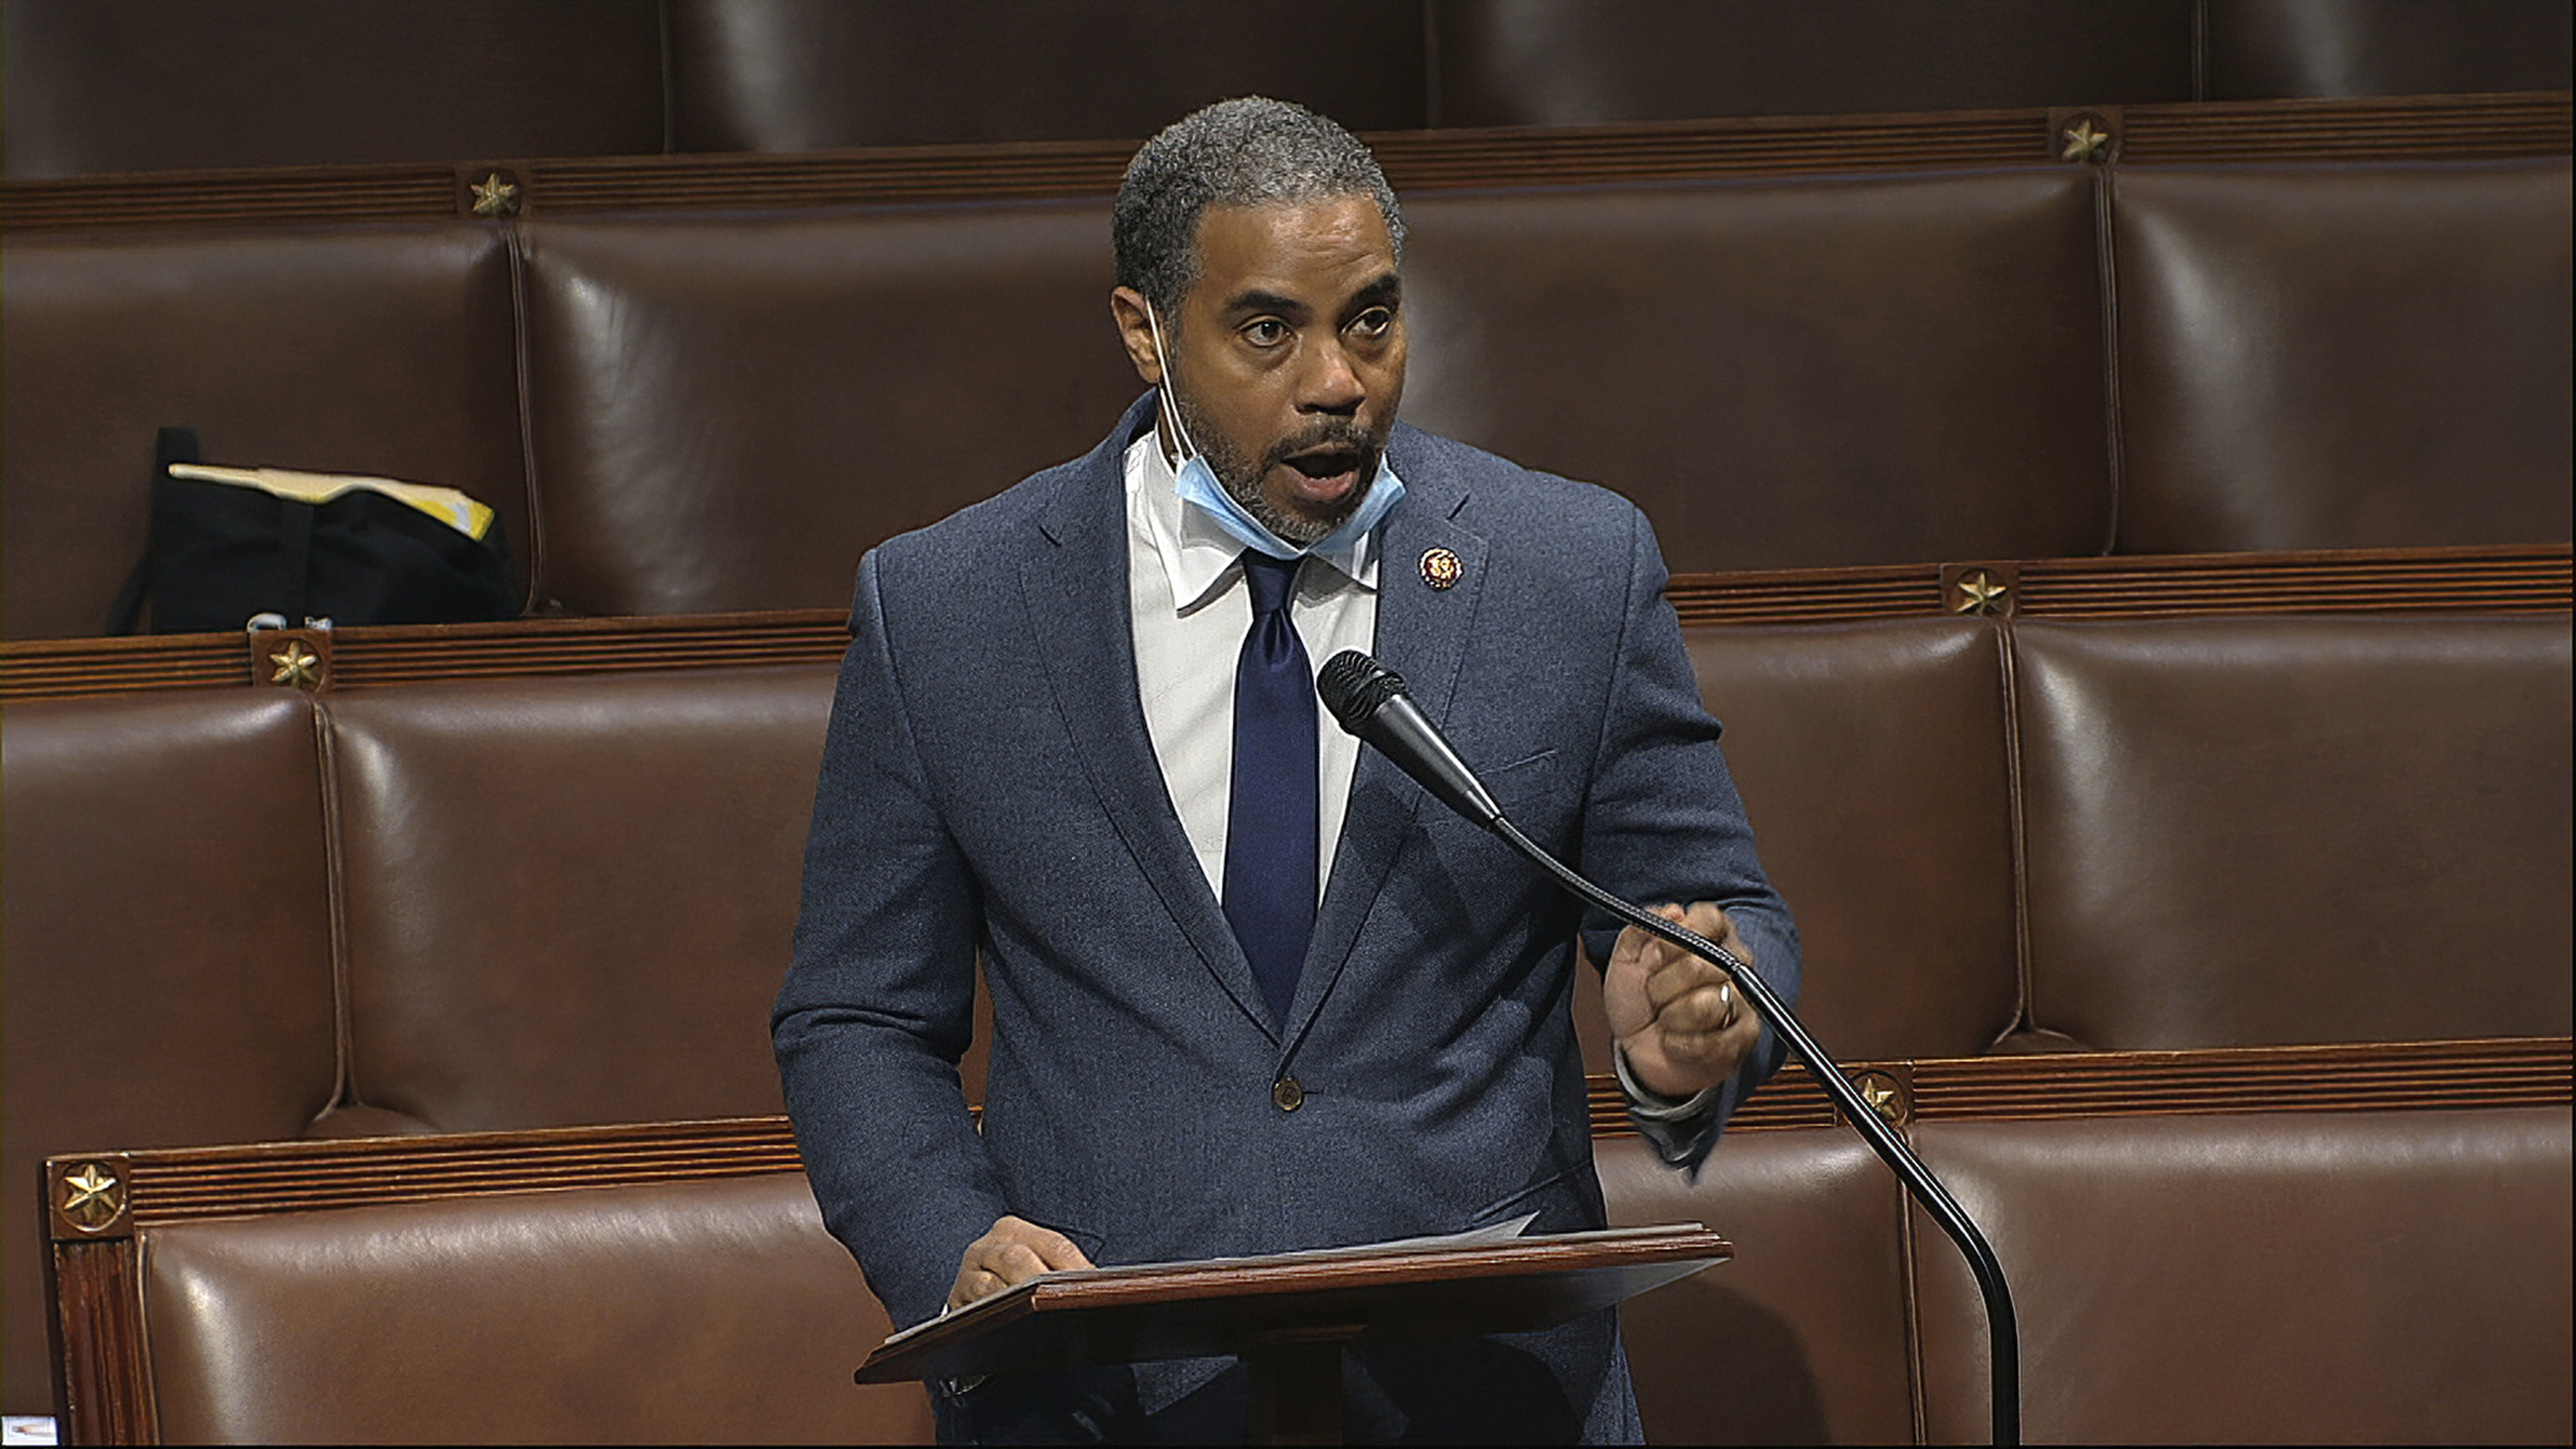 Nevada Rep. Horsford acknowledges he had extramarital affair